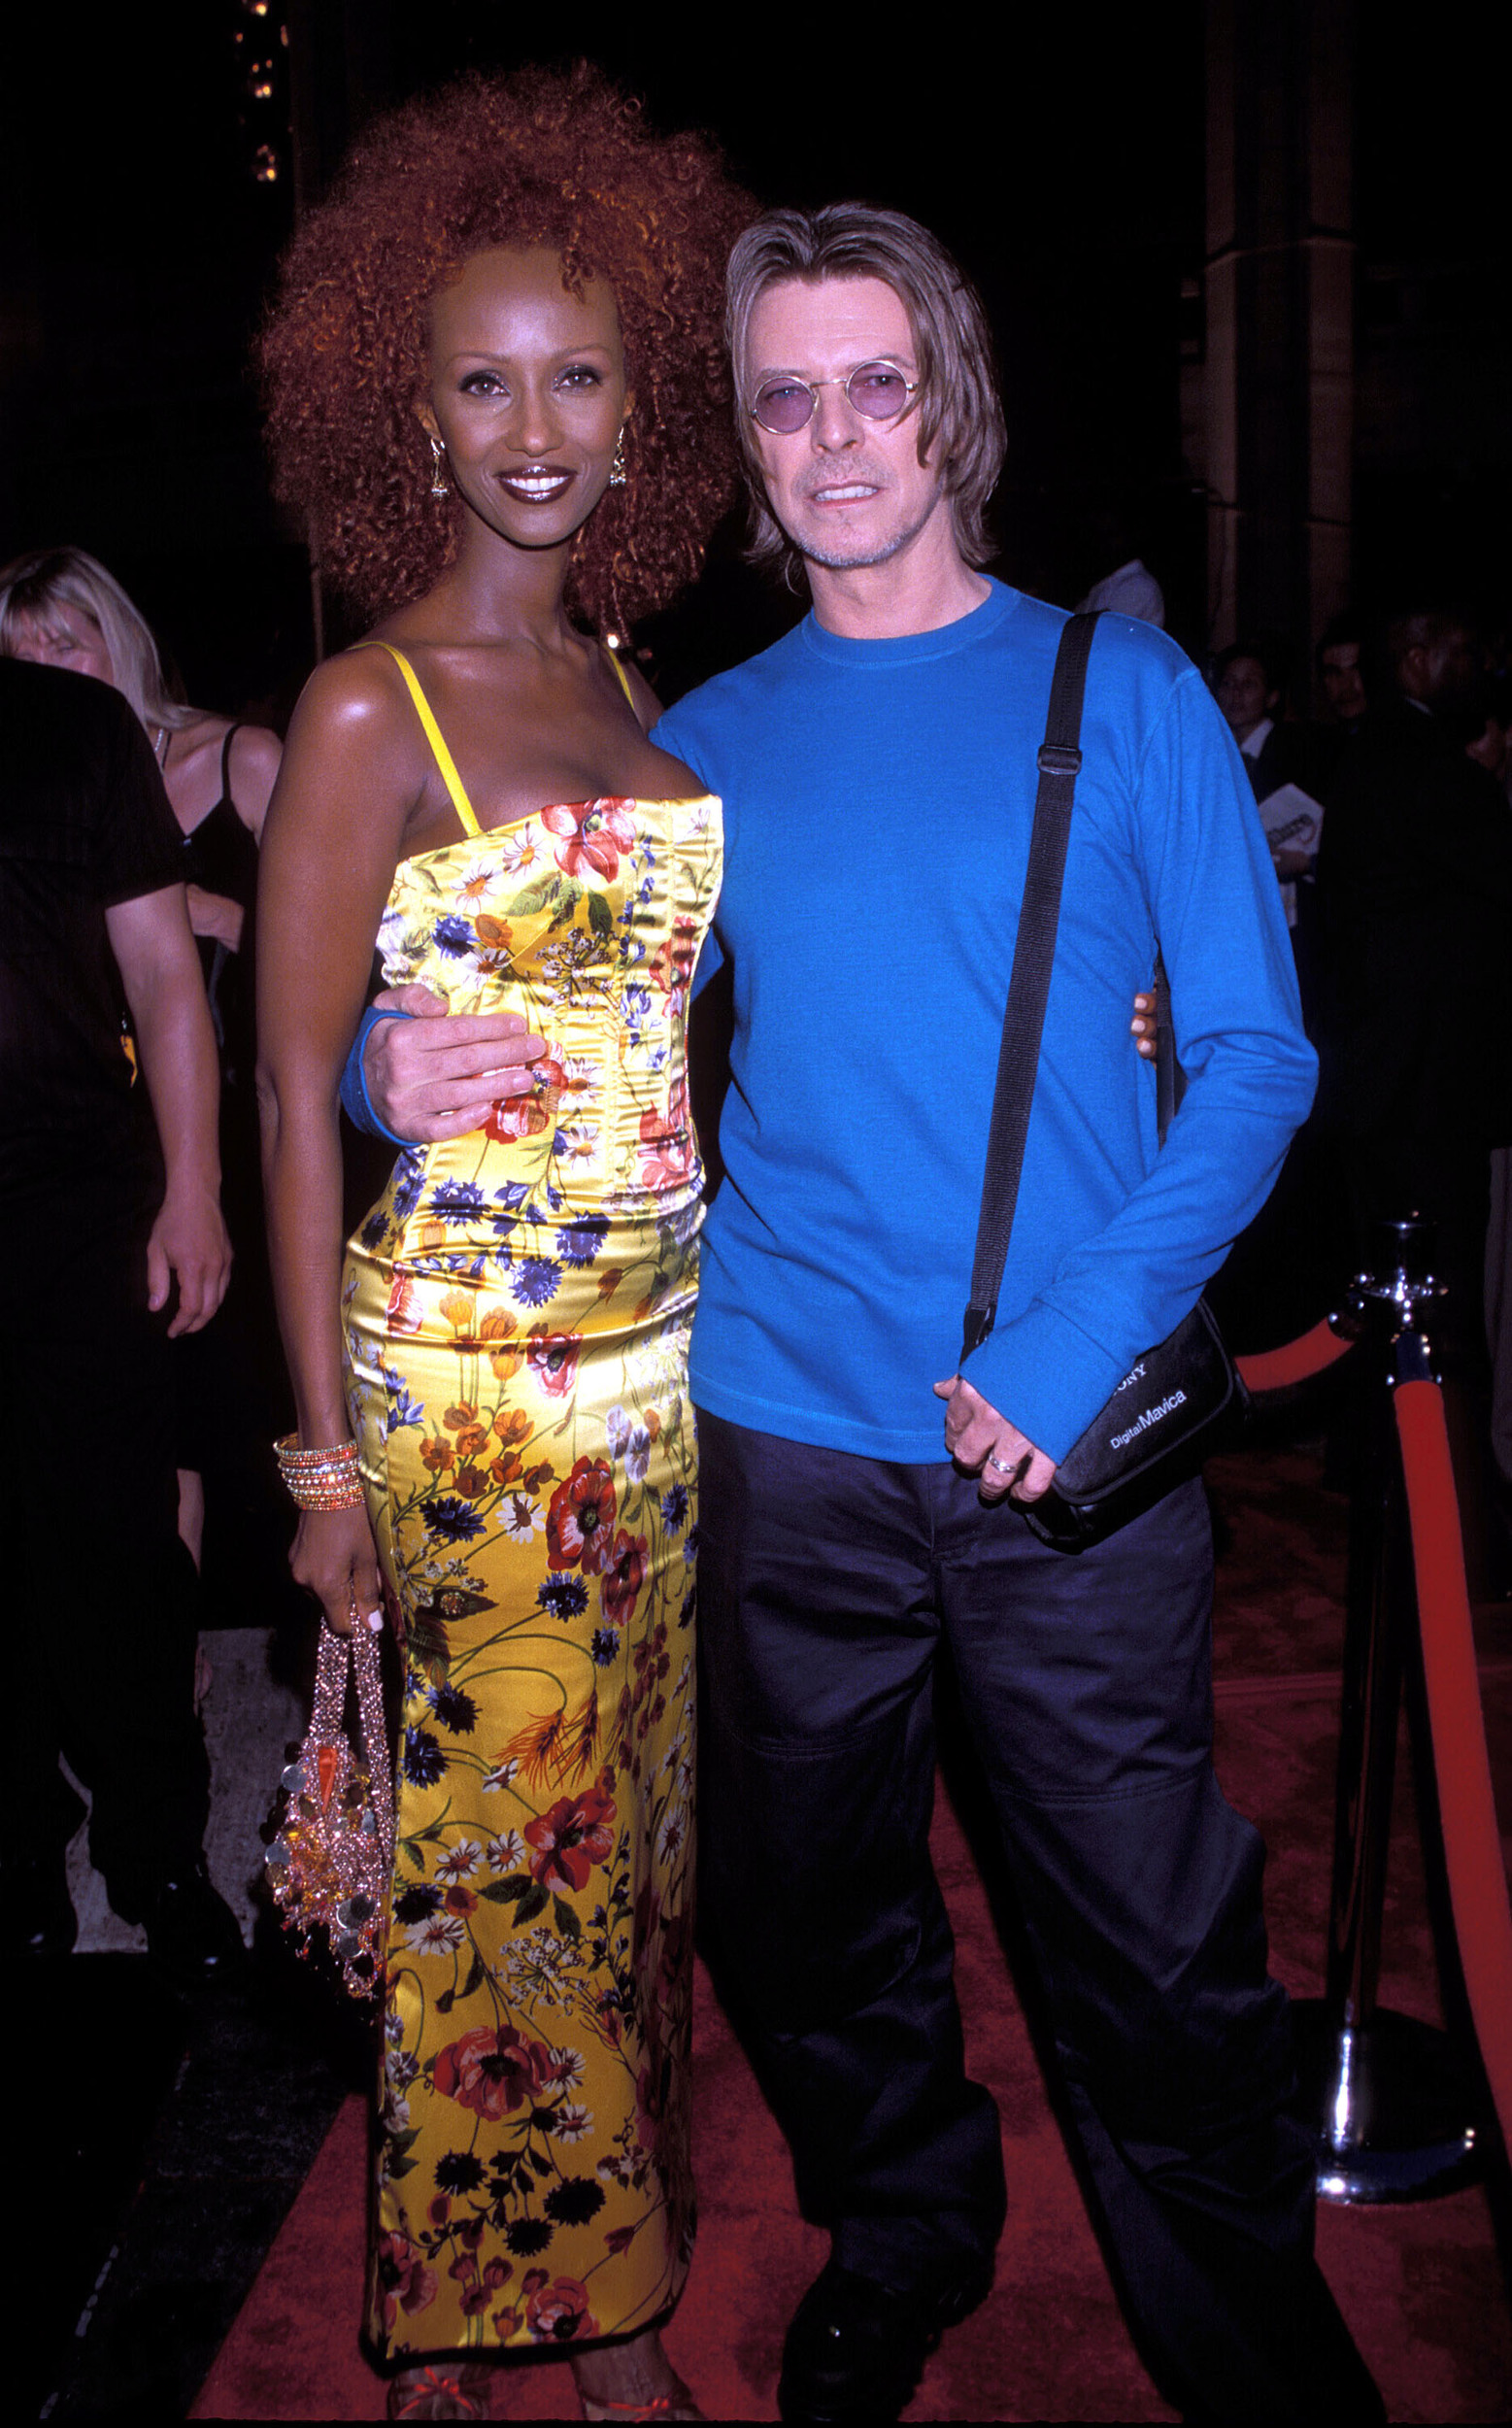 David Bowie And Iman Had A Storybook Romance For 25 Years Aol Entertainment